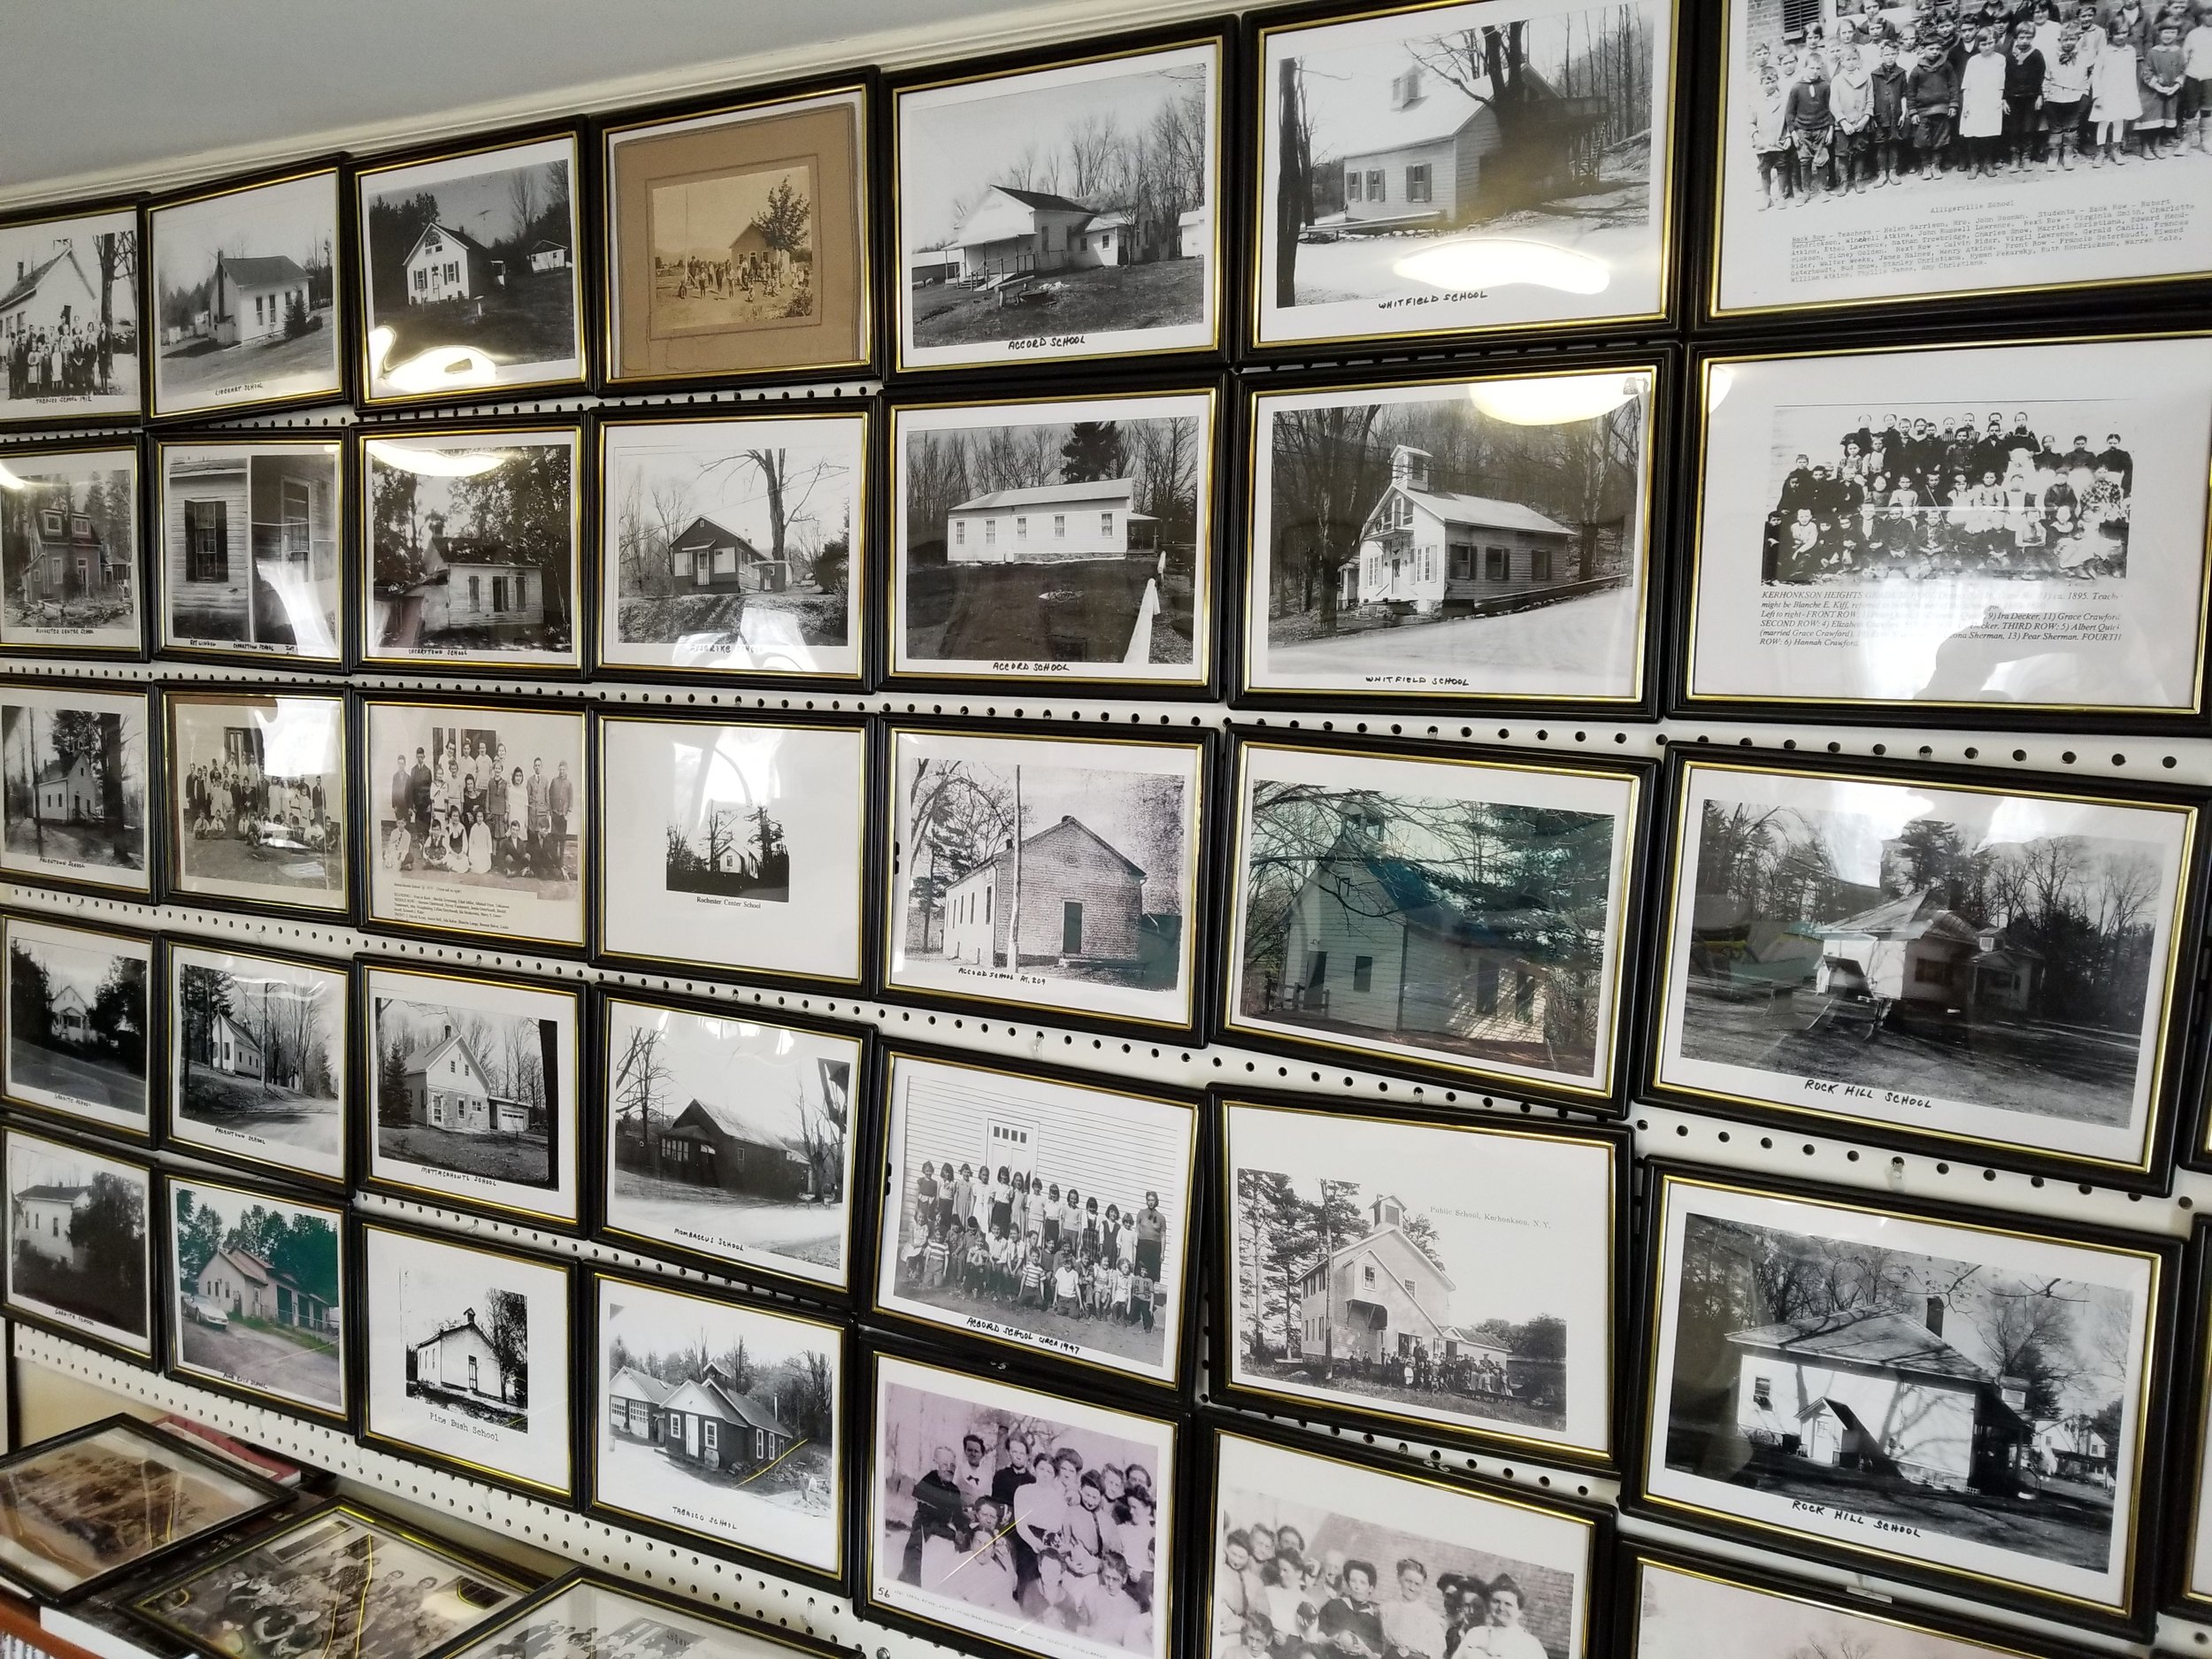 just a few of the collection of historic photos at the FHR museum